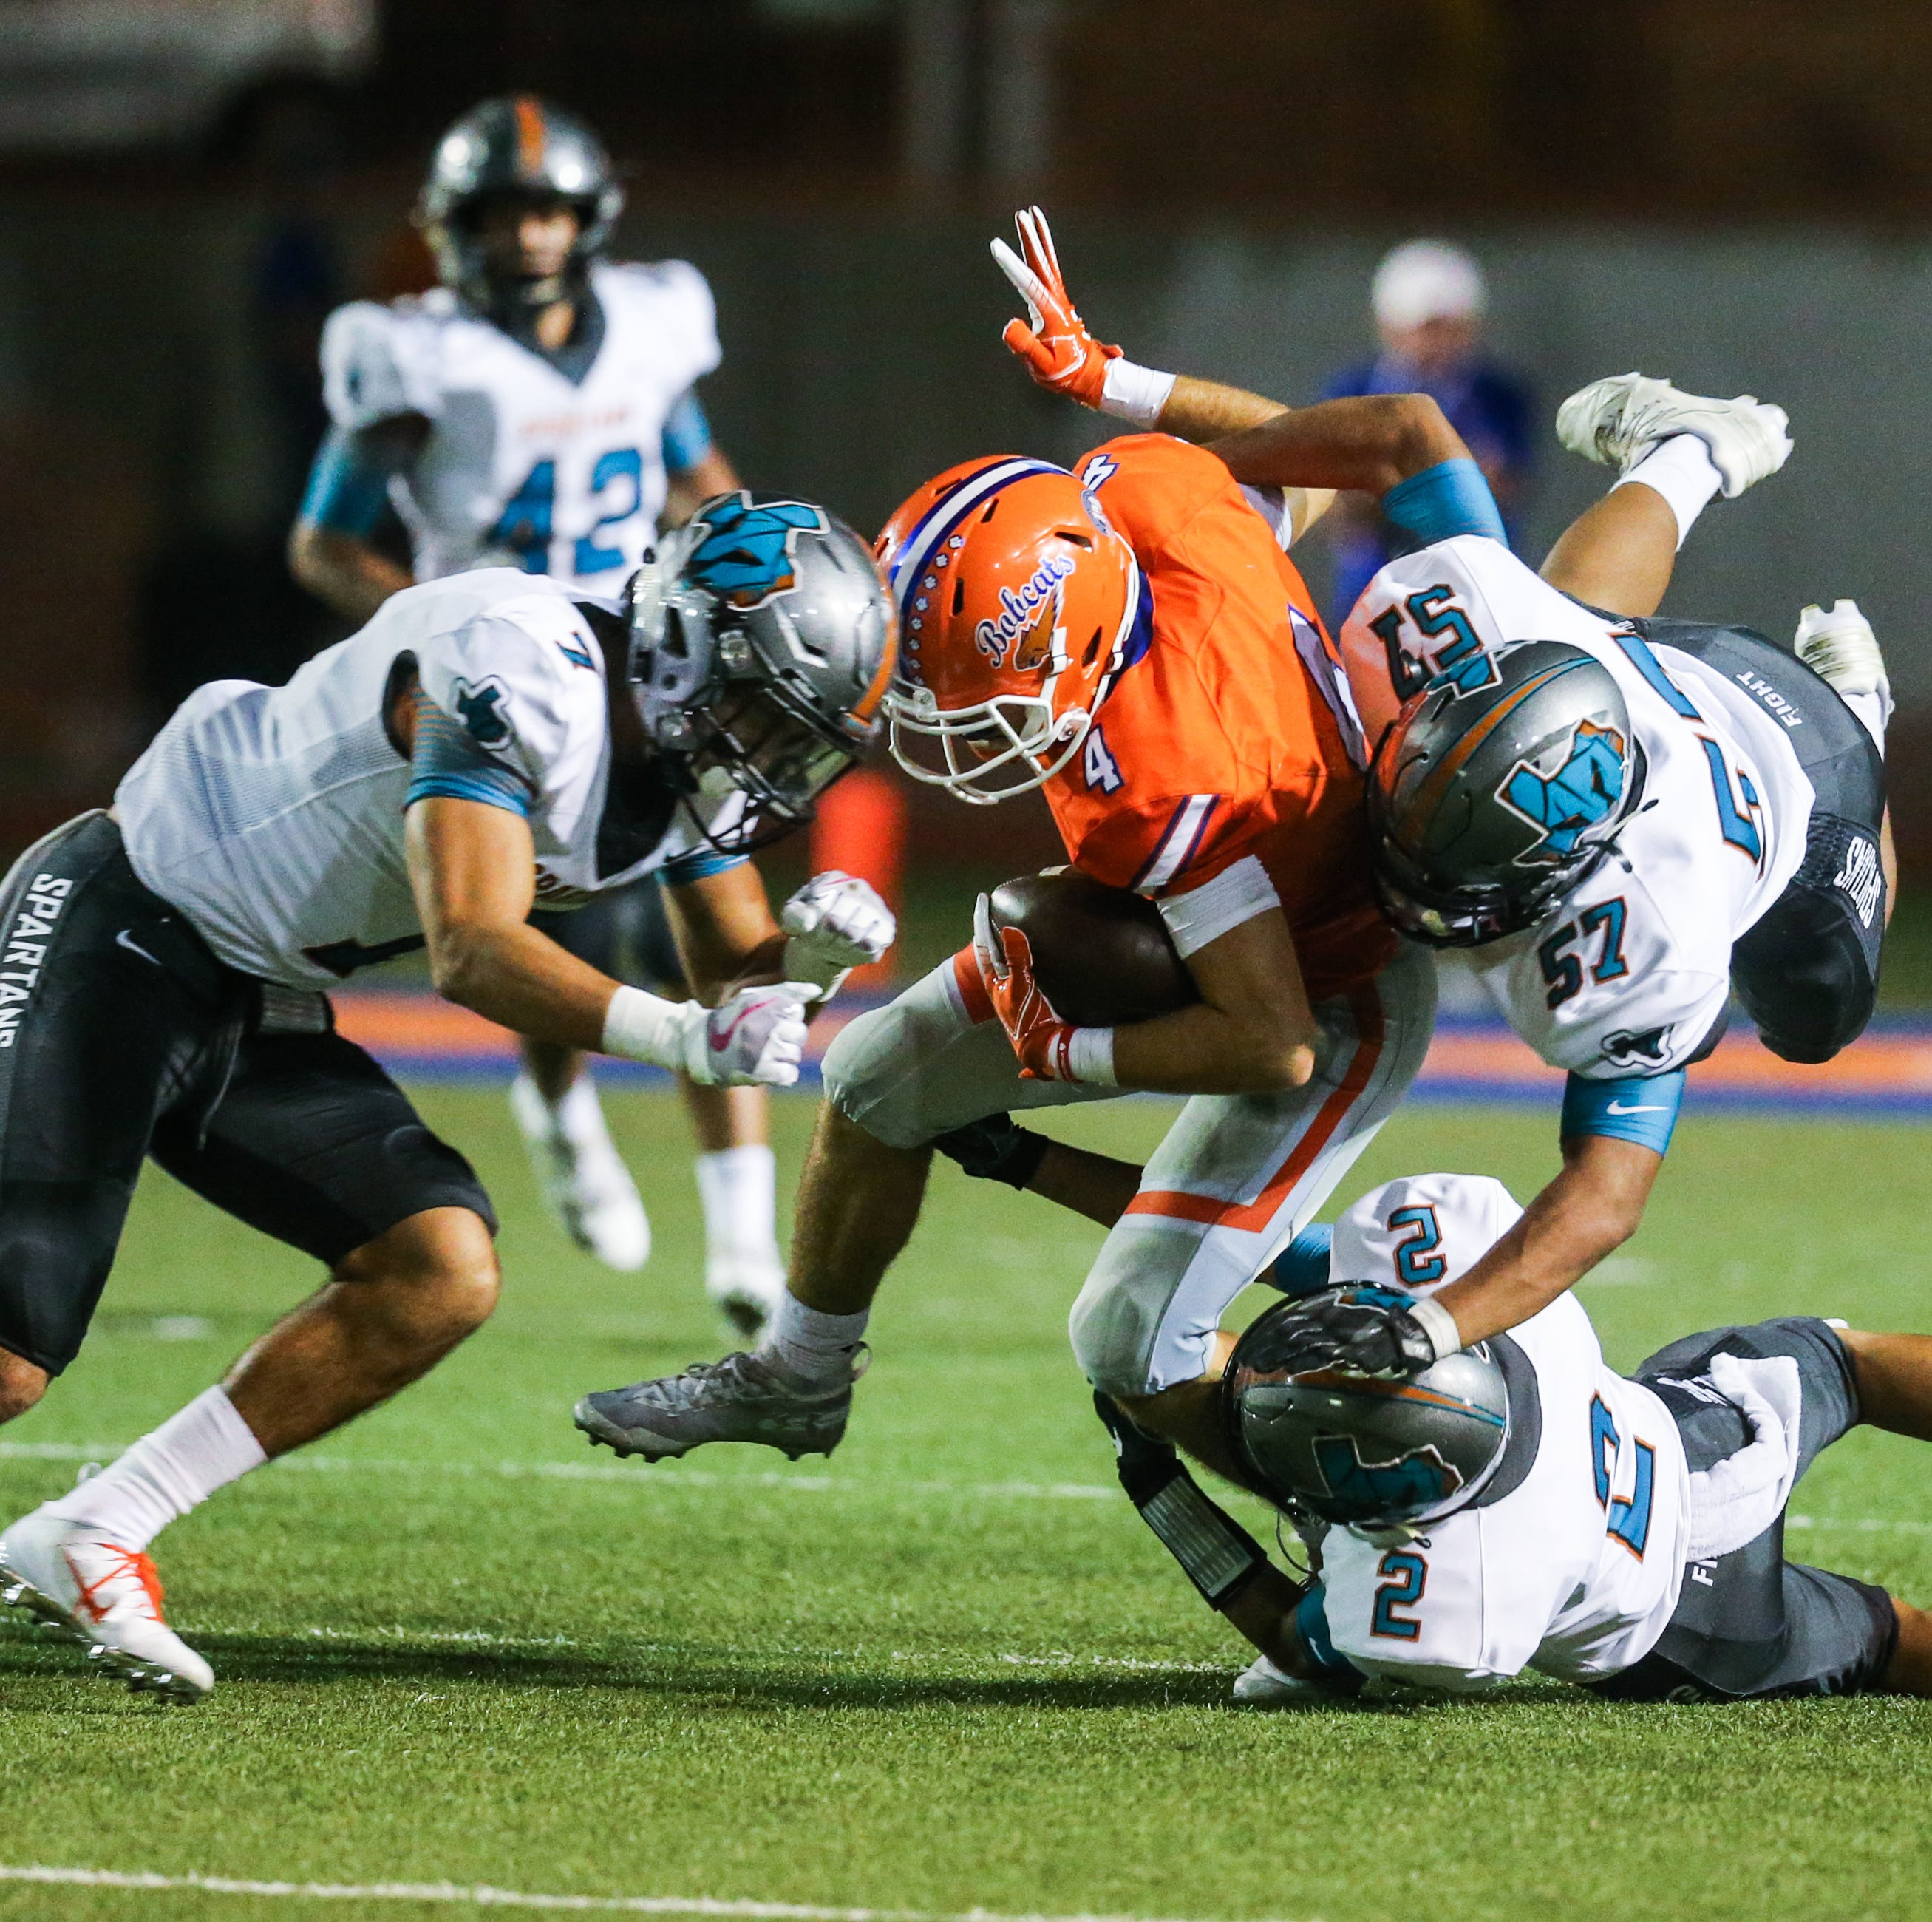 Vote for the S-T Football Player of the Week